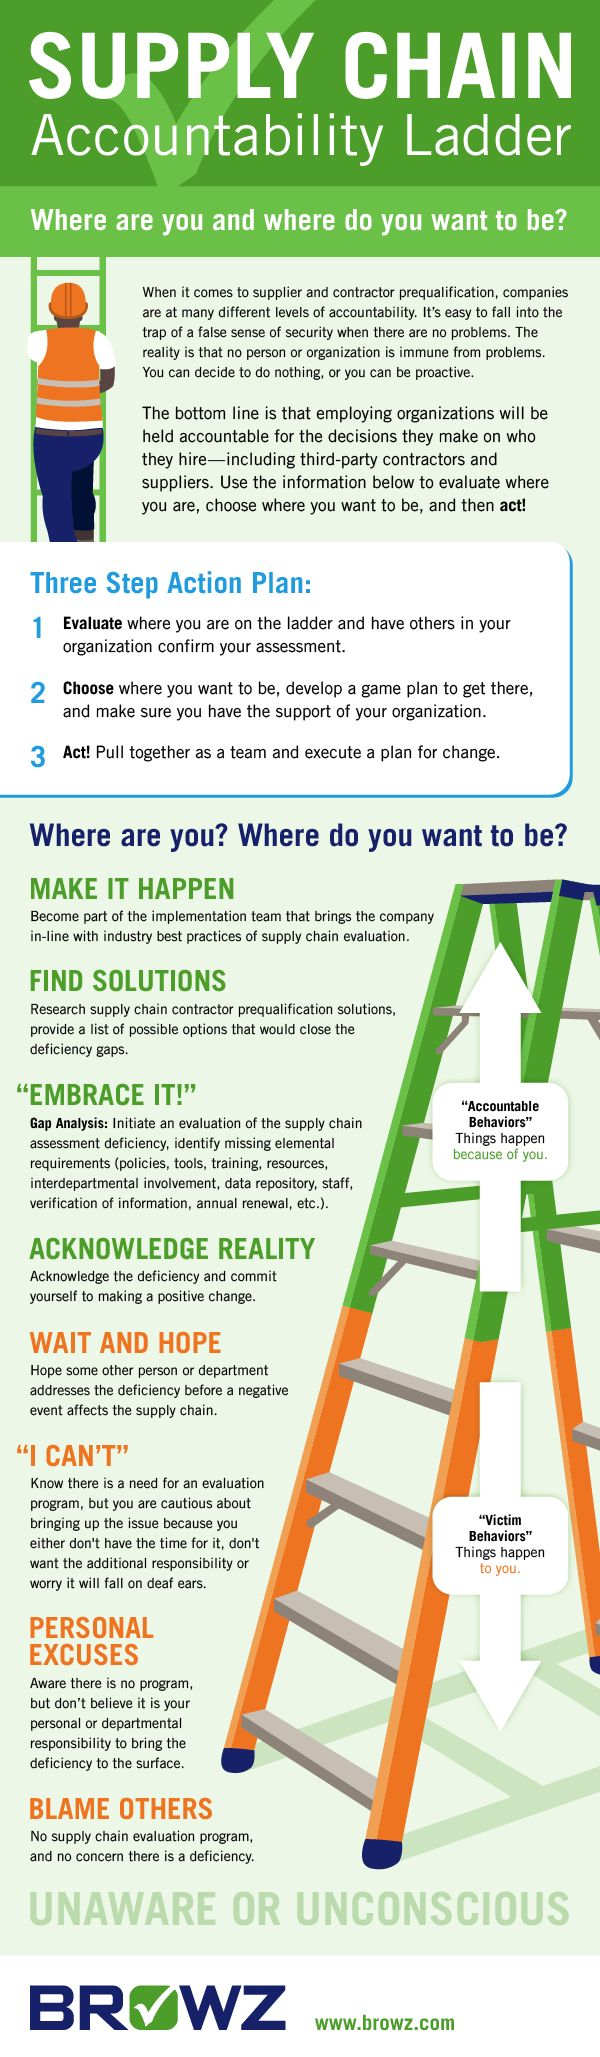 Supply Chain Accountability Ladder #Infographic